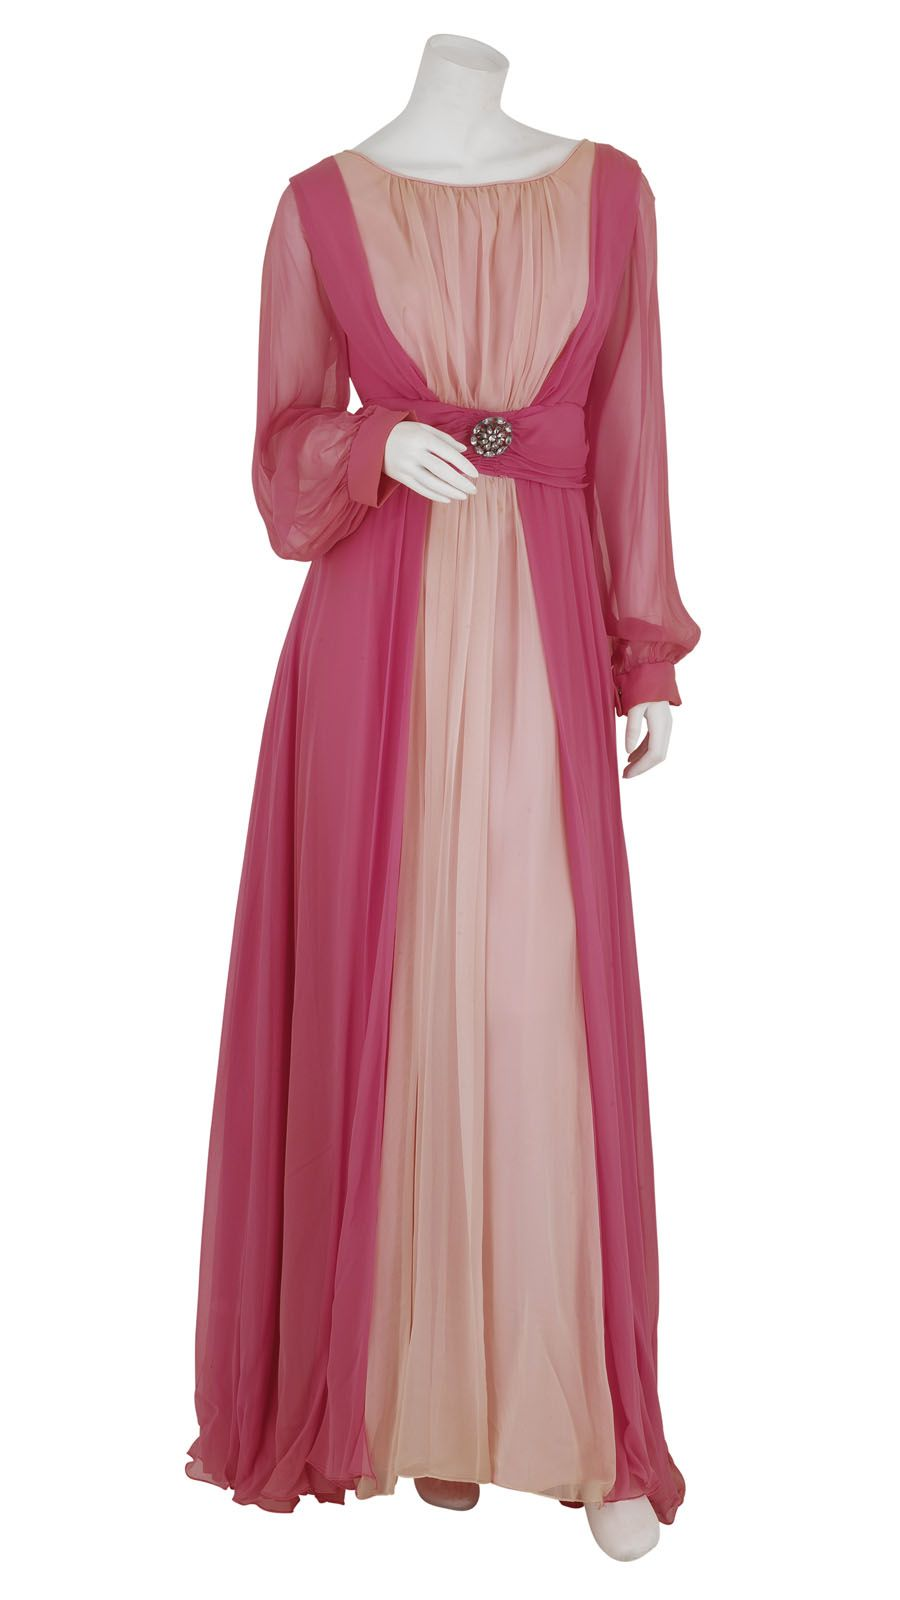 70s boudoir // renaiscence / medieval outfit if accesorized well ...